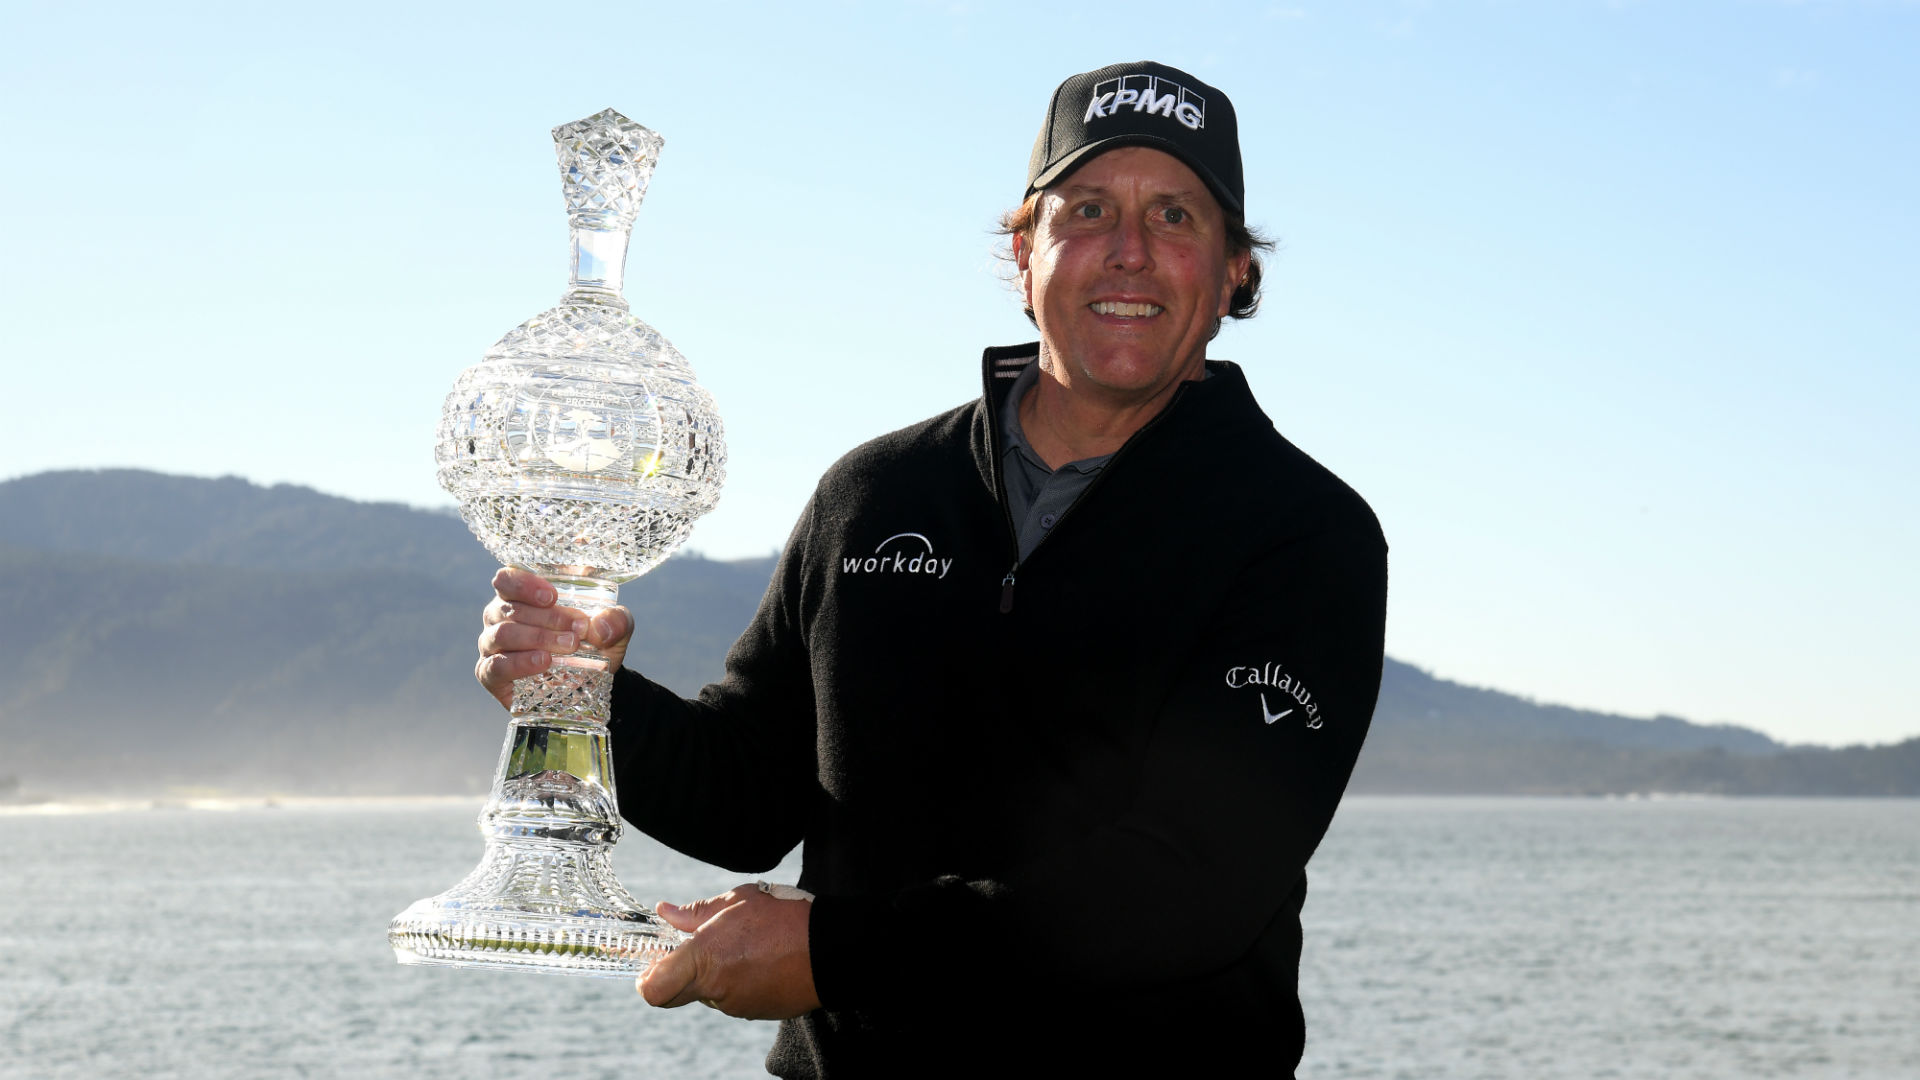 Phil Mickelson sees no carry-over to U.S. Open from latest Pebble Beach win